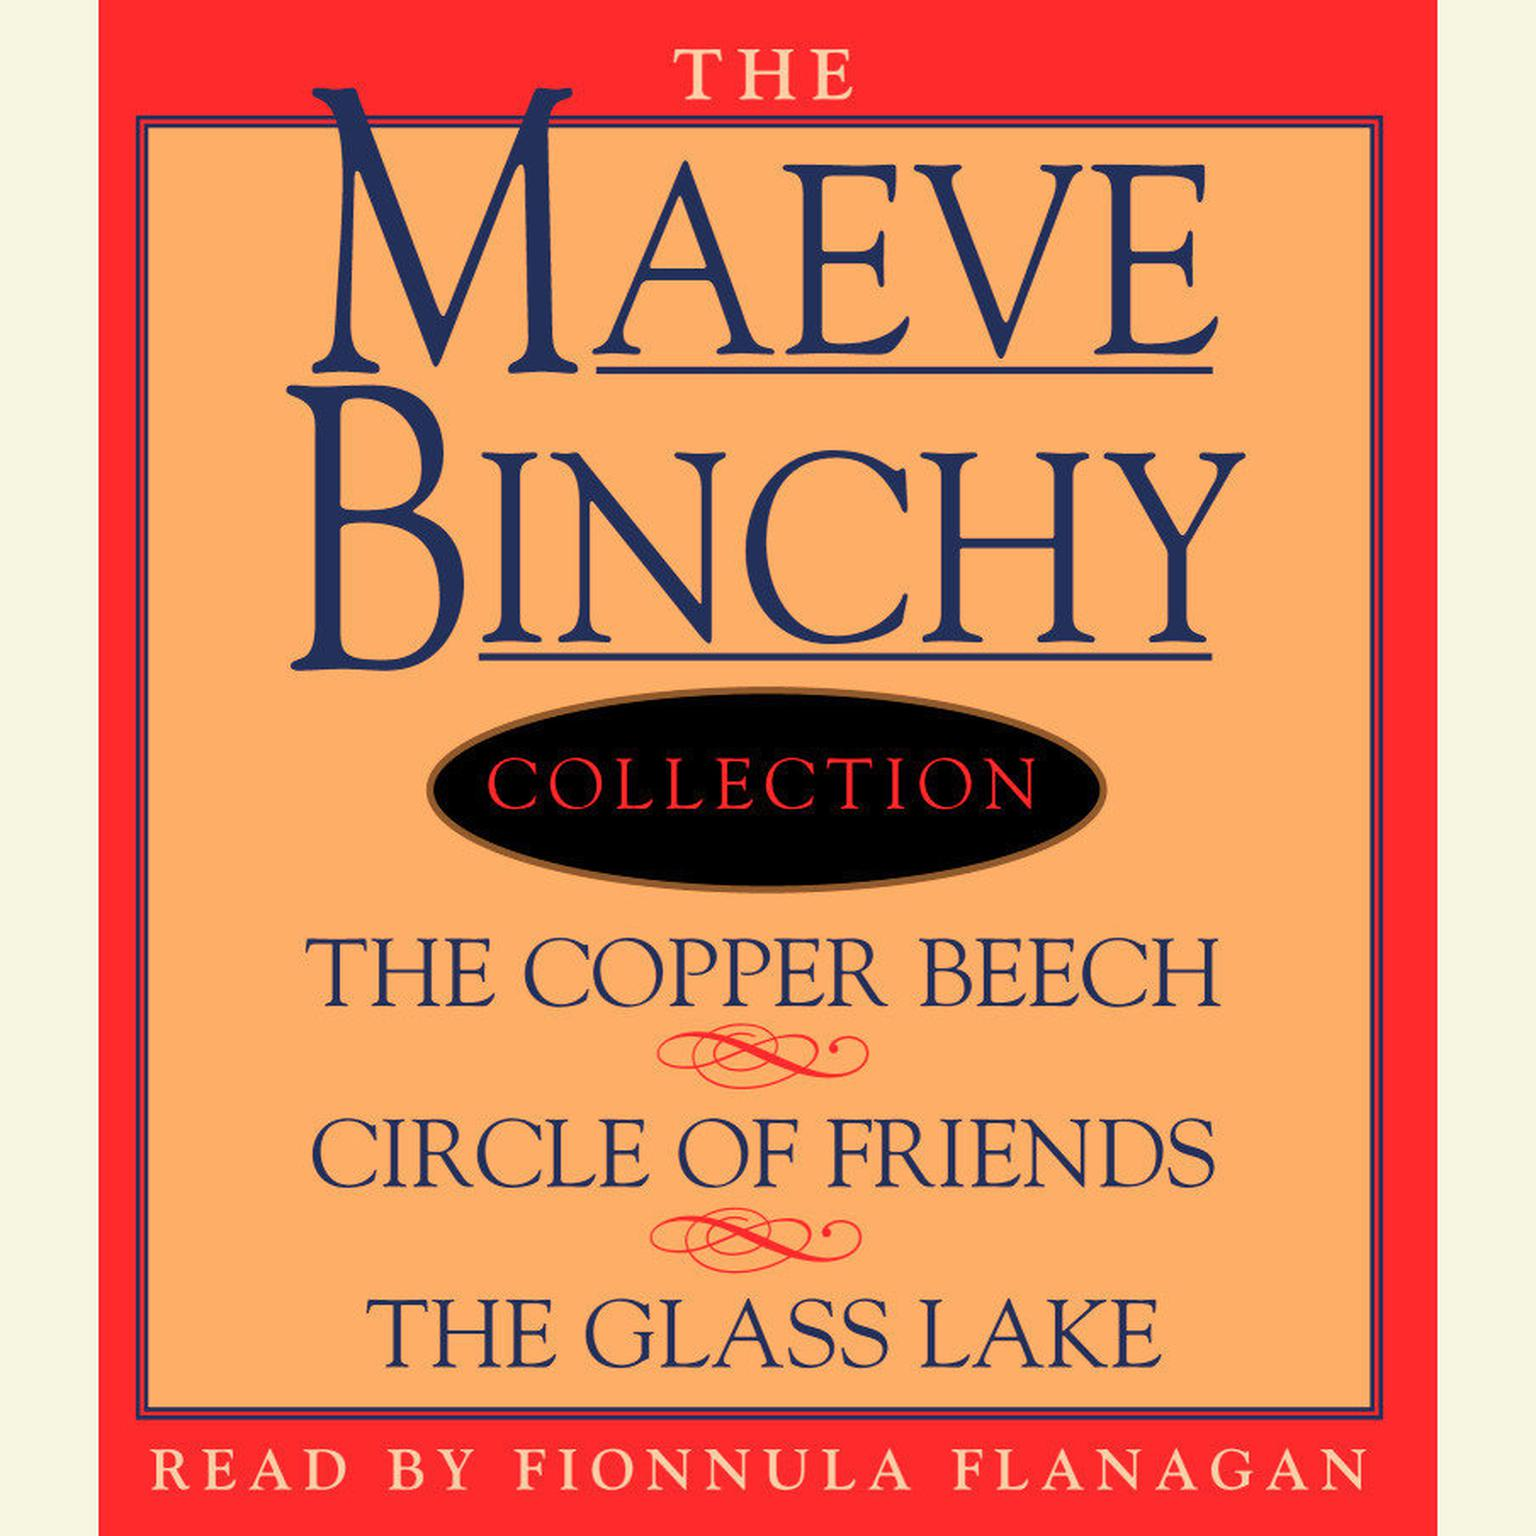 Printable Maeve Binchy Value Collection: The Copper Beech, Circle of Friends, The Glass Lake Audiobook Cover Art